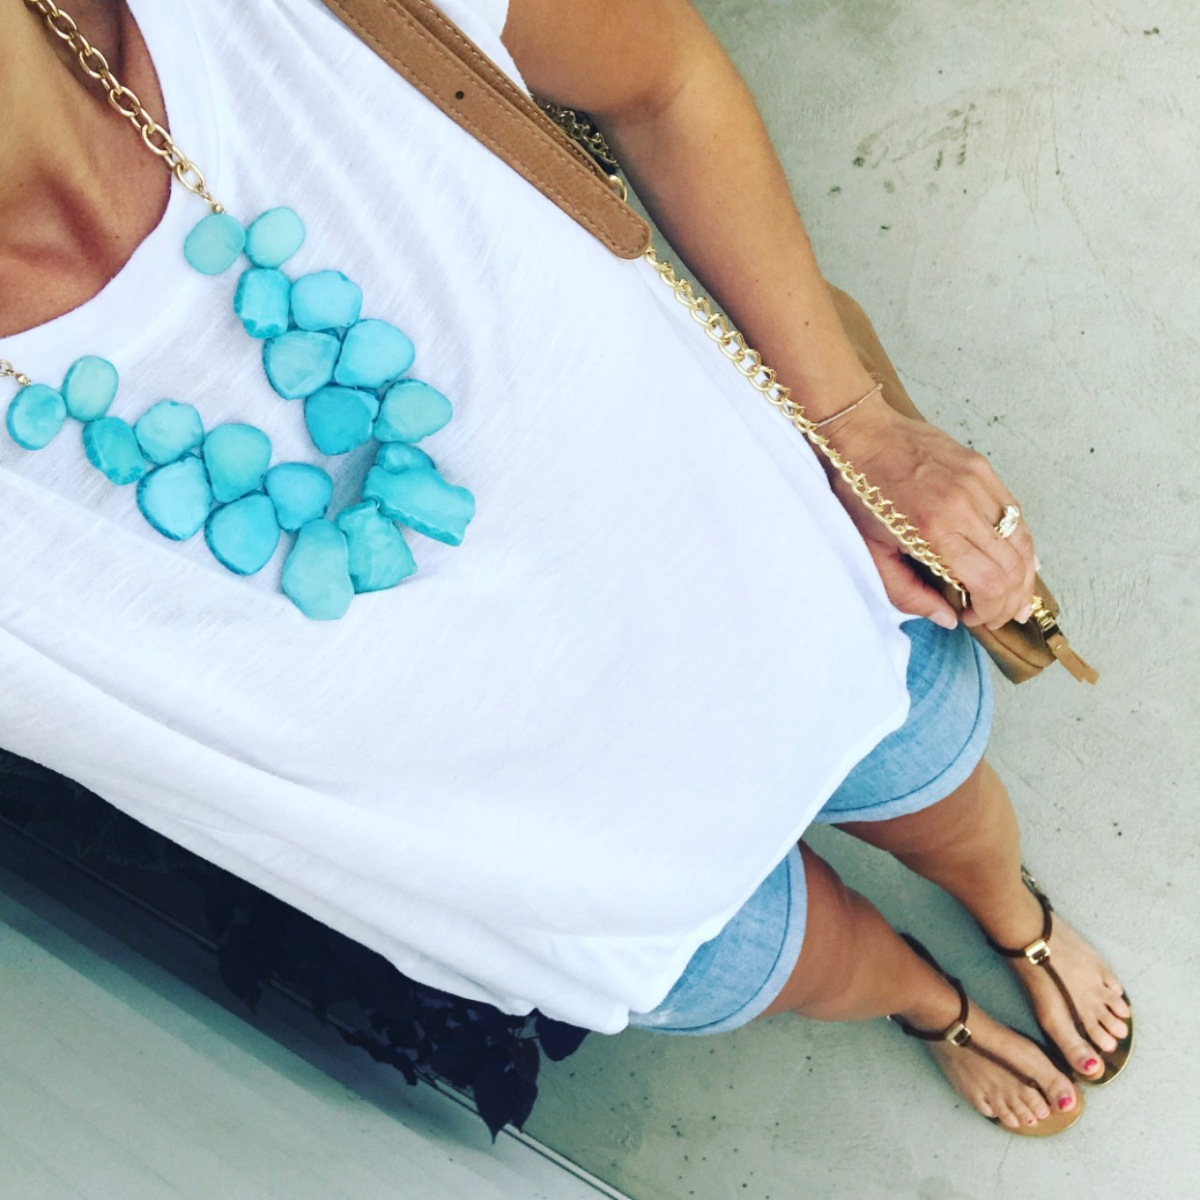 Simple summer look with a pop of color in a seaglass necklace |www.pearlsandsportsbras.com|